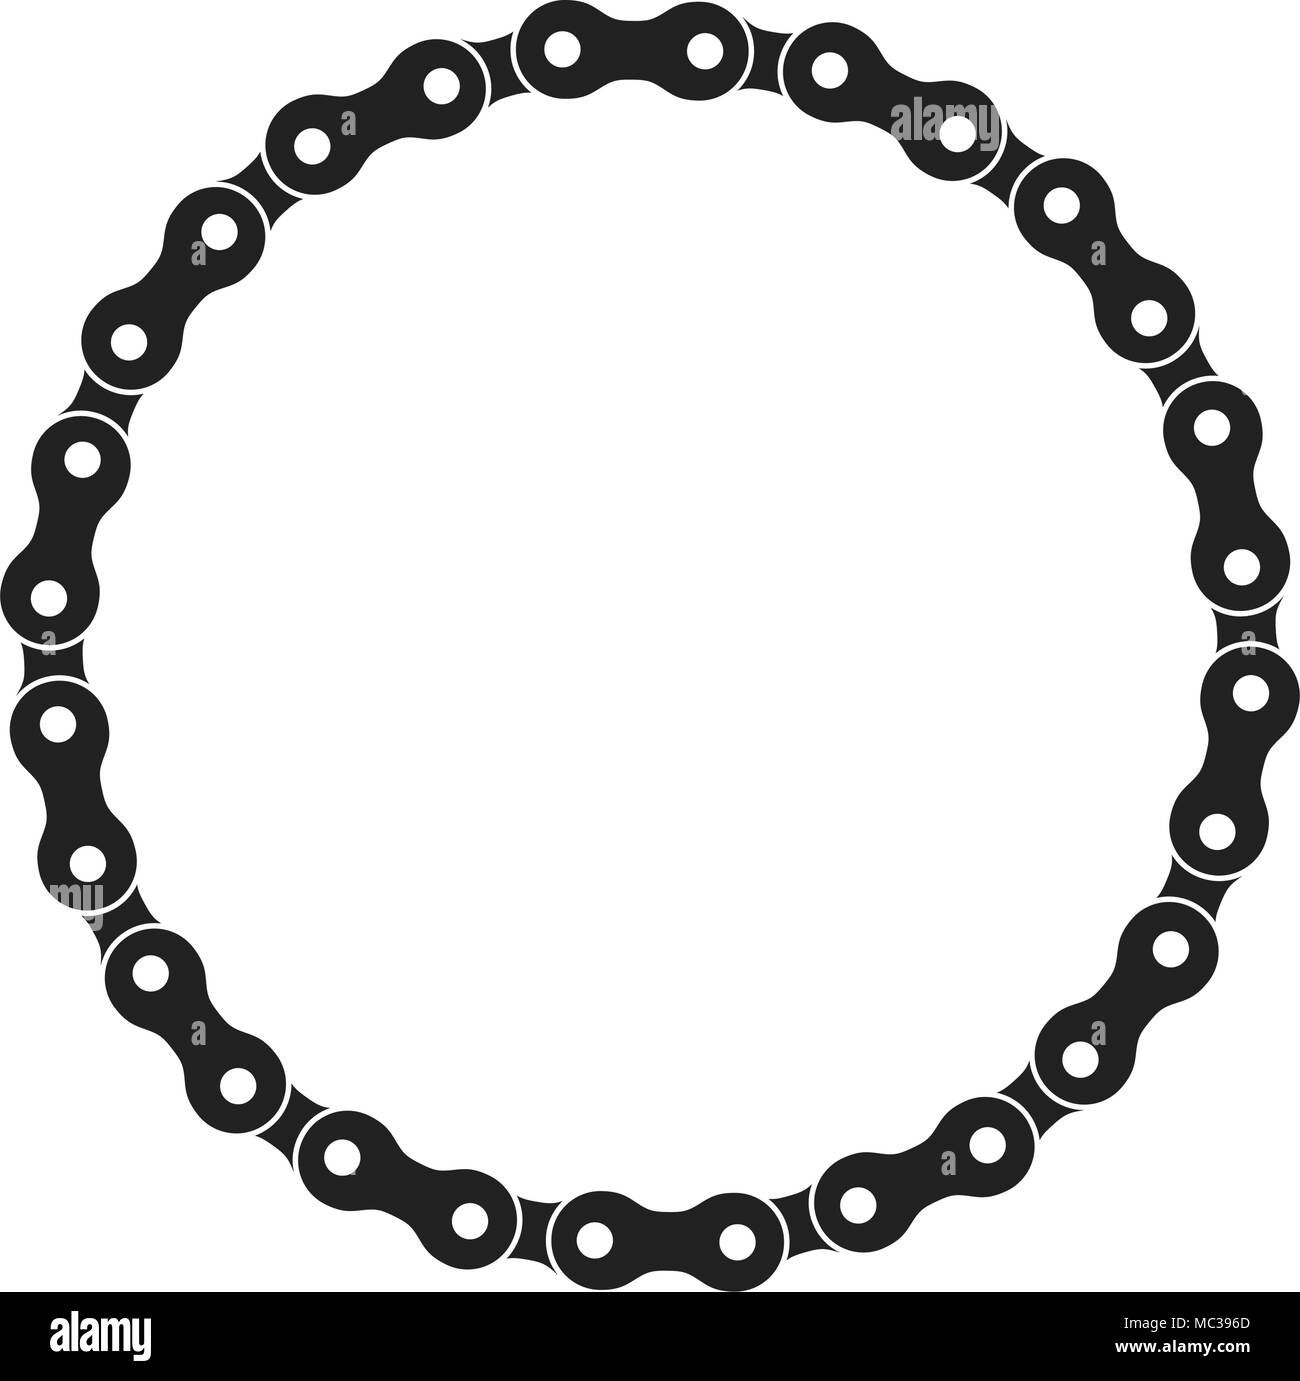 Round Vector Frame Made of Bike or Bicycle Chain. Monochrome Black ...